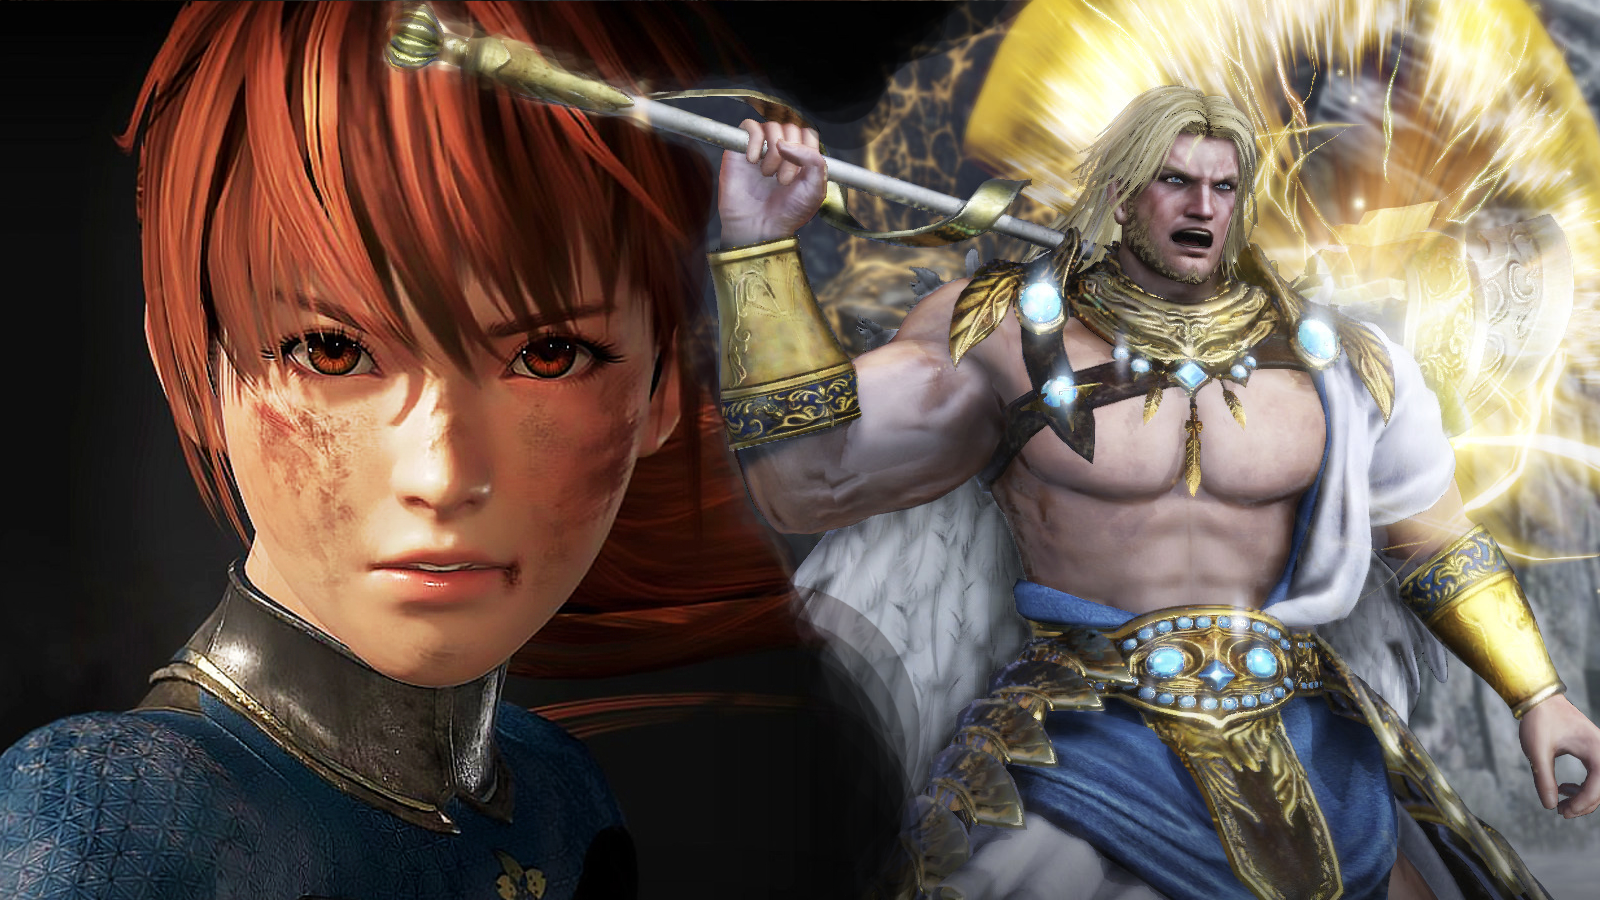 giveaway dead or alive 6 warriors orochi 4 fate extella the umbral star koei tecmo Xseed